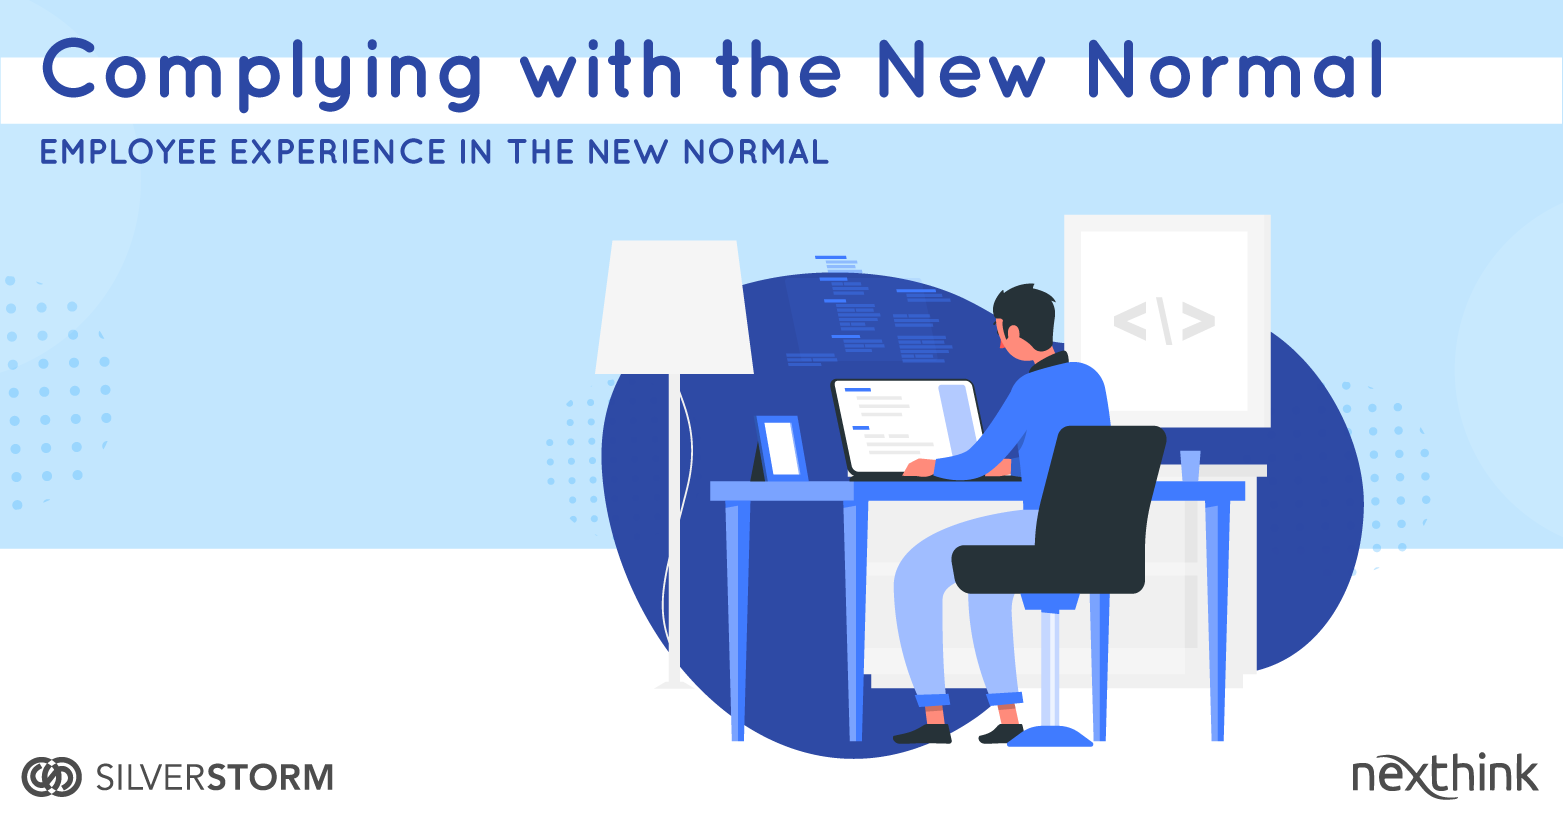 Complying with the New Normal